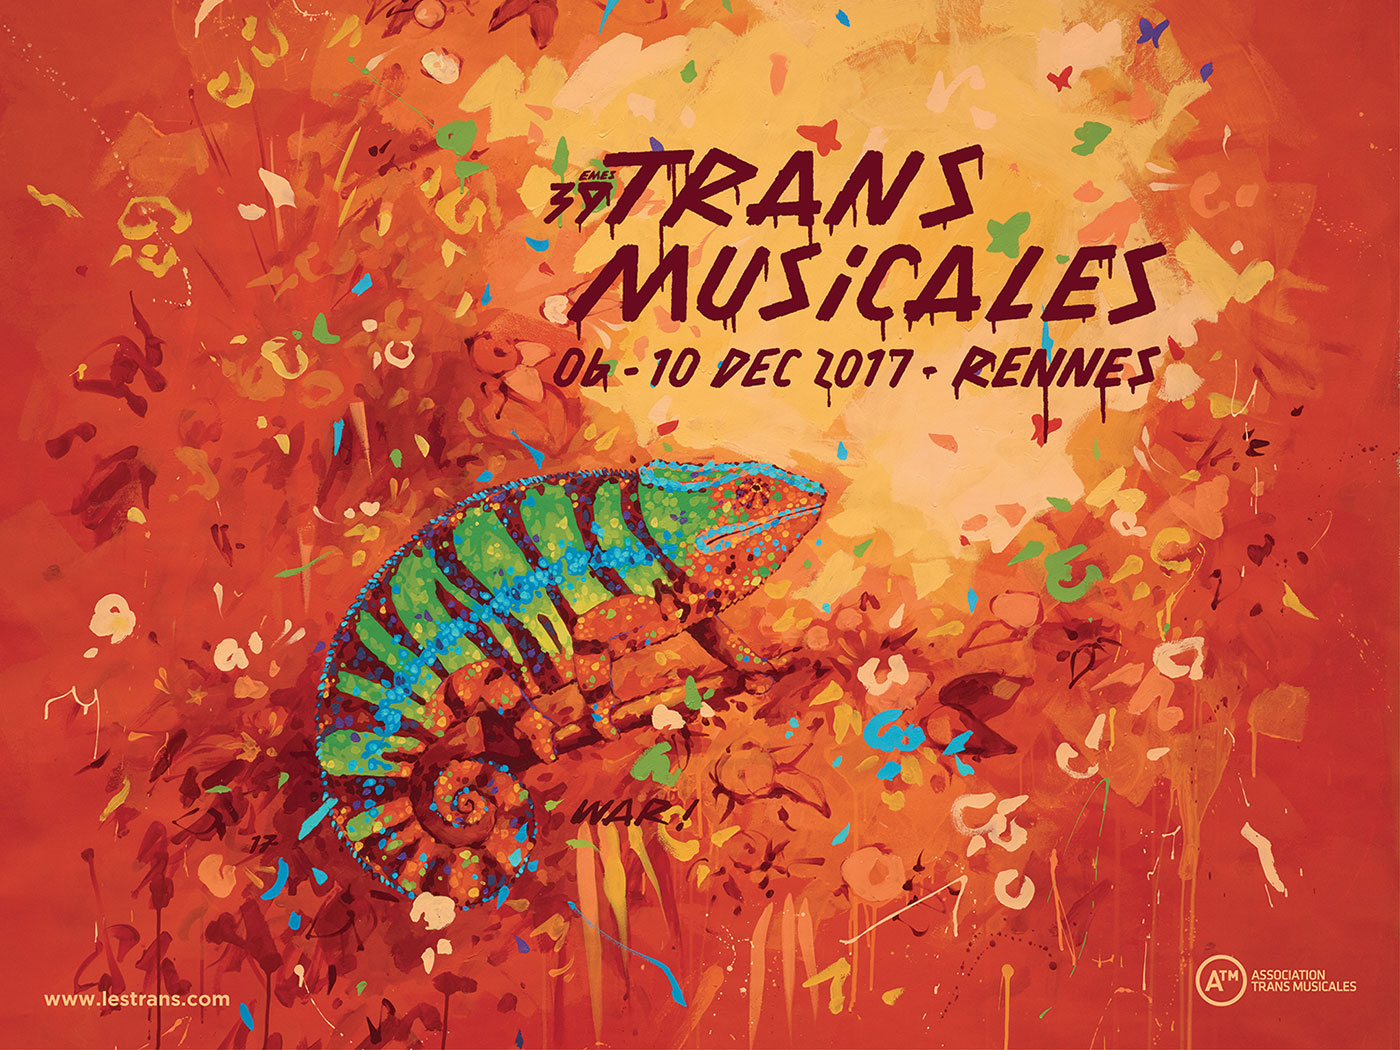 Play! Lost in Les Transmusicales line-up